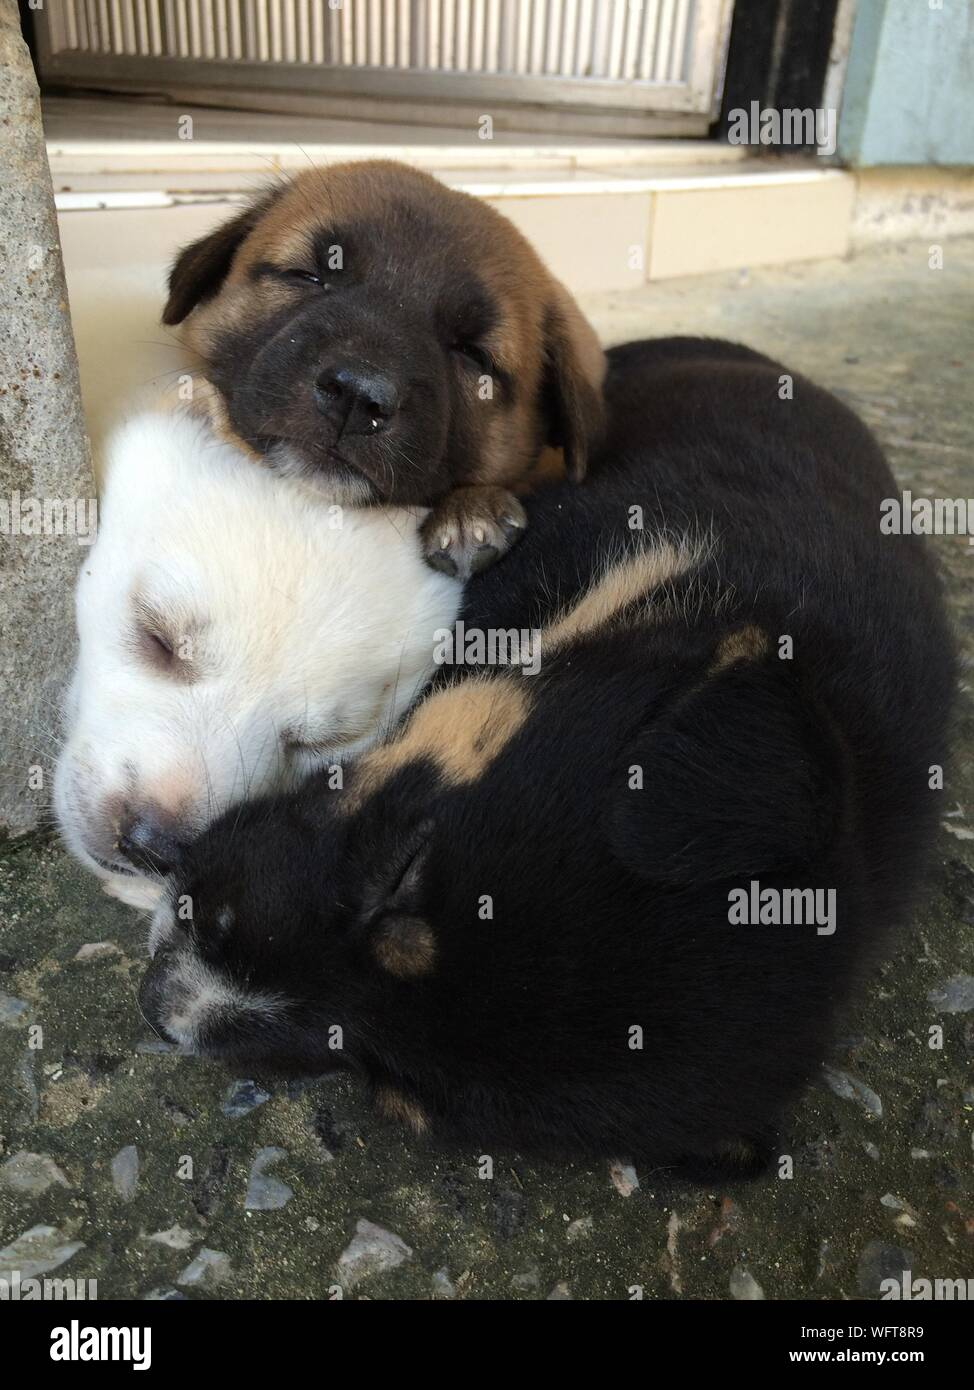 Close-up Of Dogs Sleeping Outdoors Stock Photo